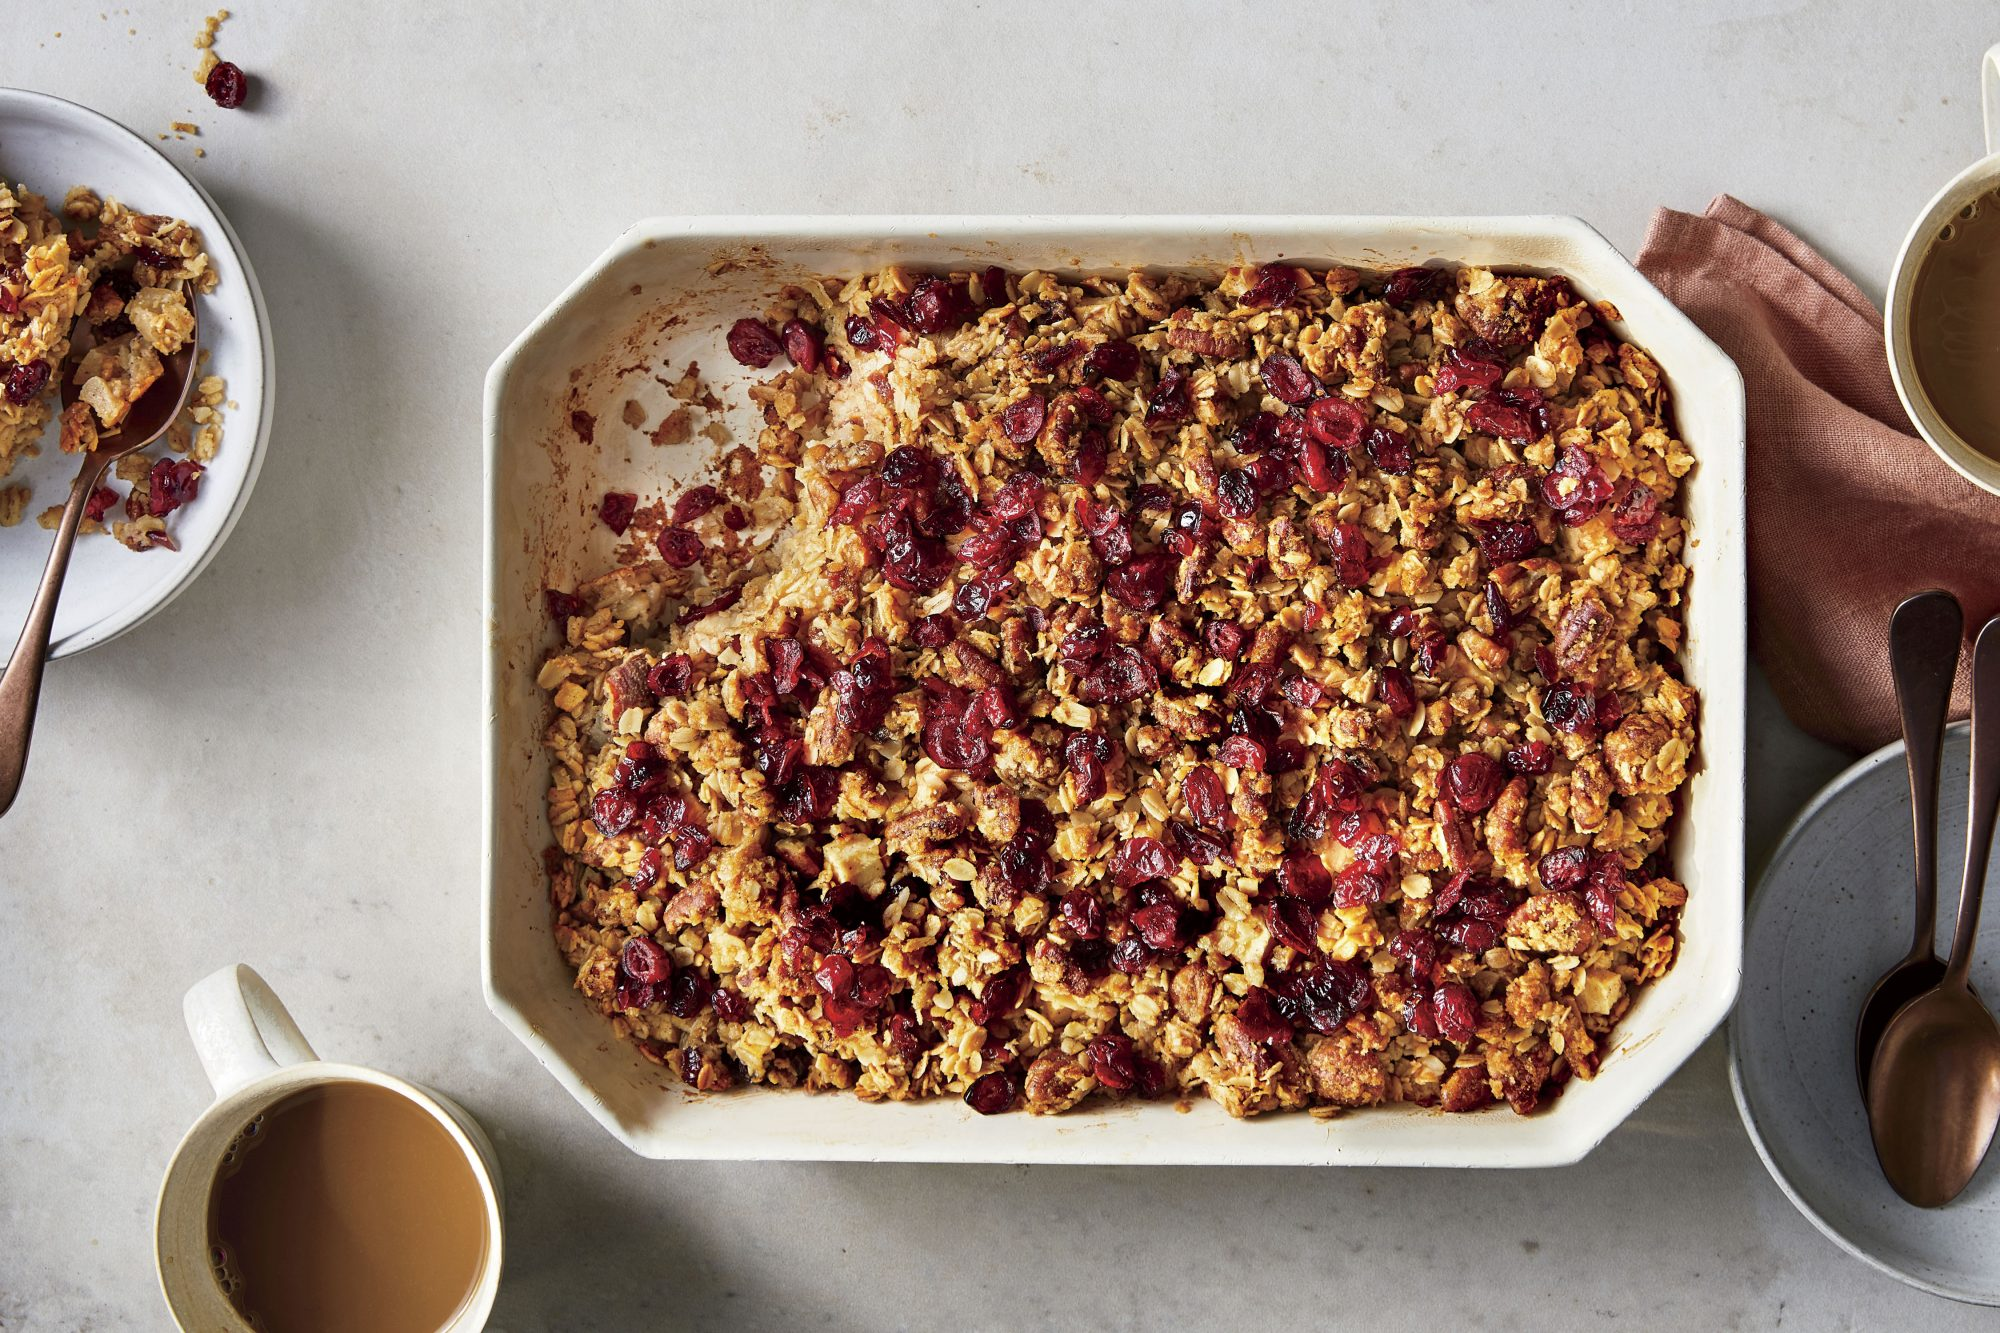 Baked Oatmeal with Apple, Cranberries, and Pecans